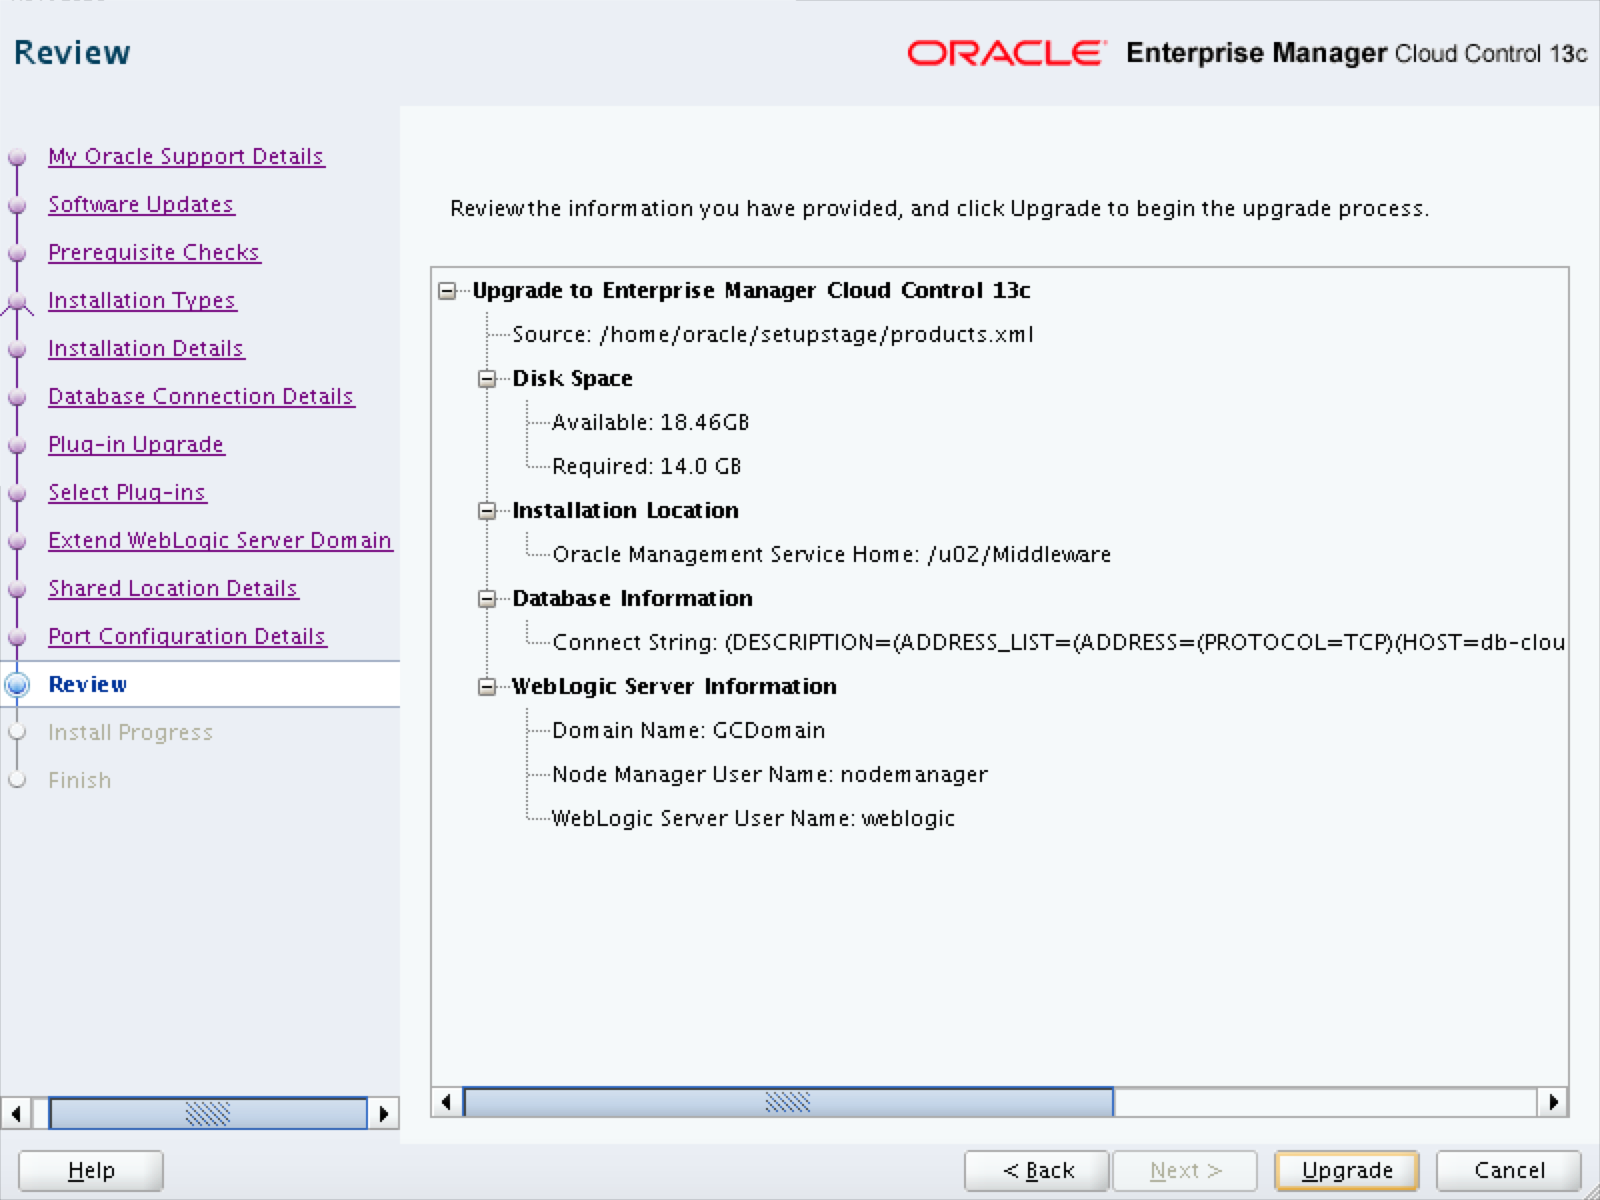 How to Upgrade Oracle Enterprise Manager Cloud Control 12c to EM13c